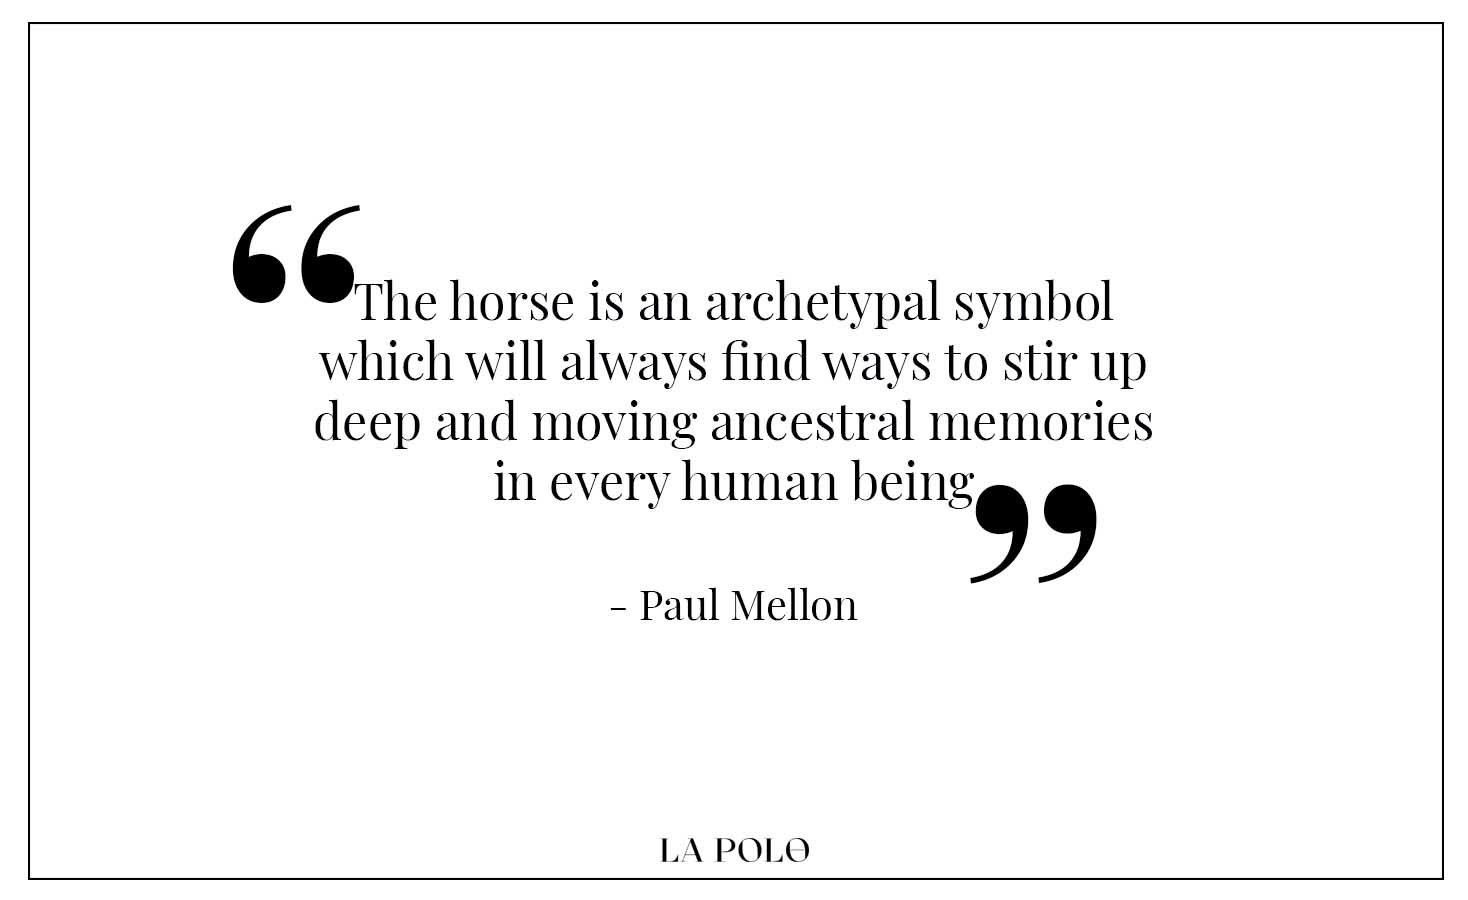 Paul Mellon quotes